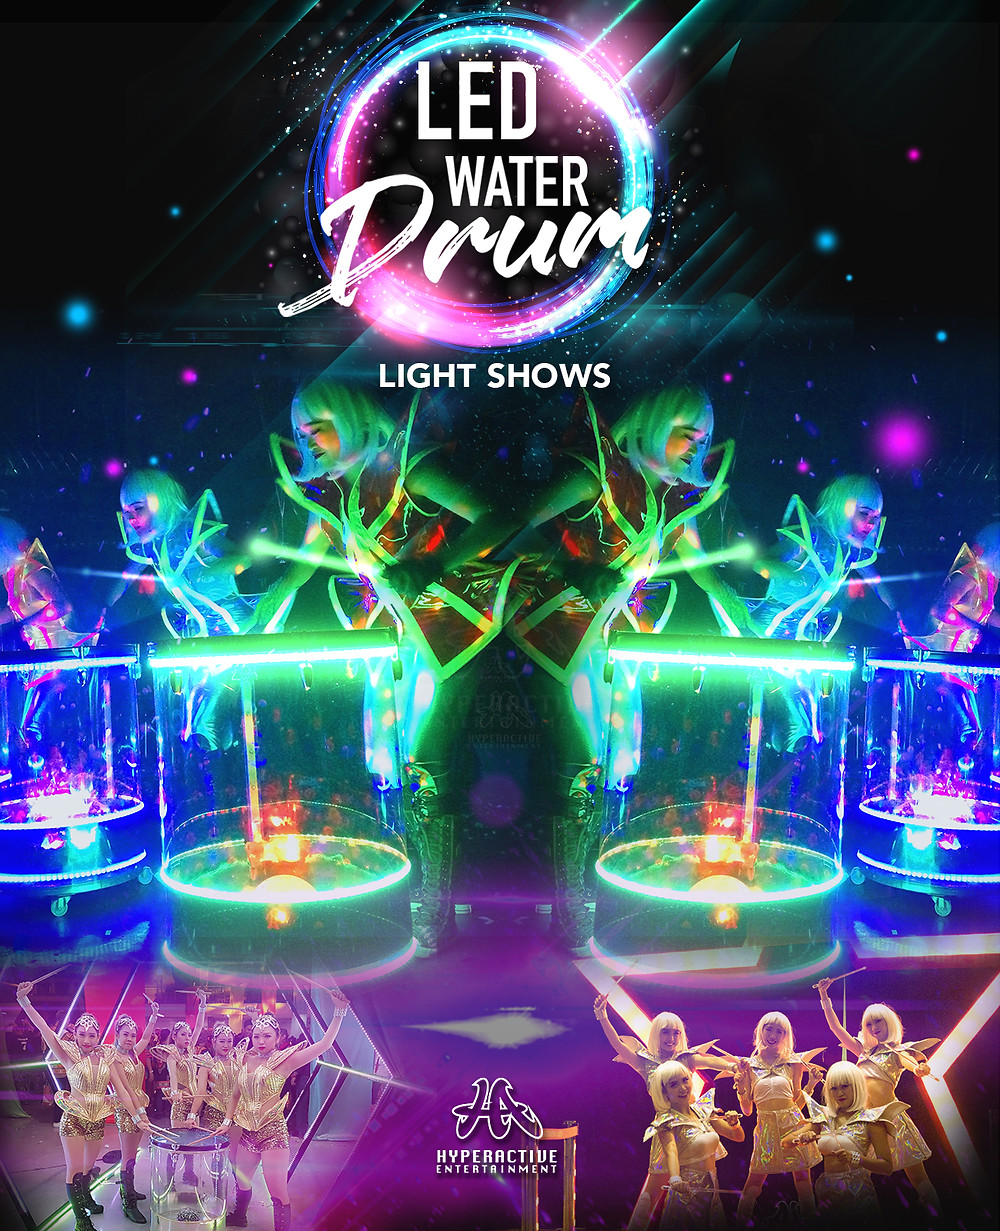 LED Water Drum